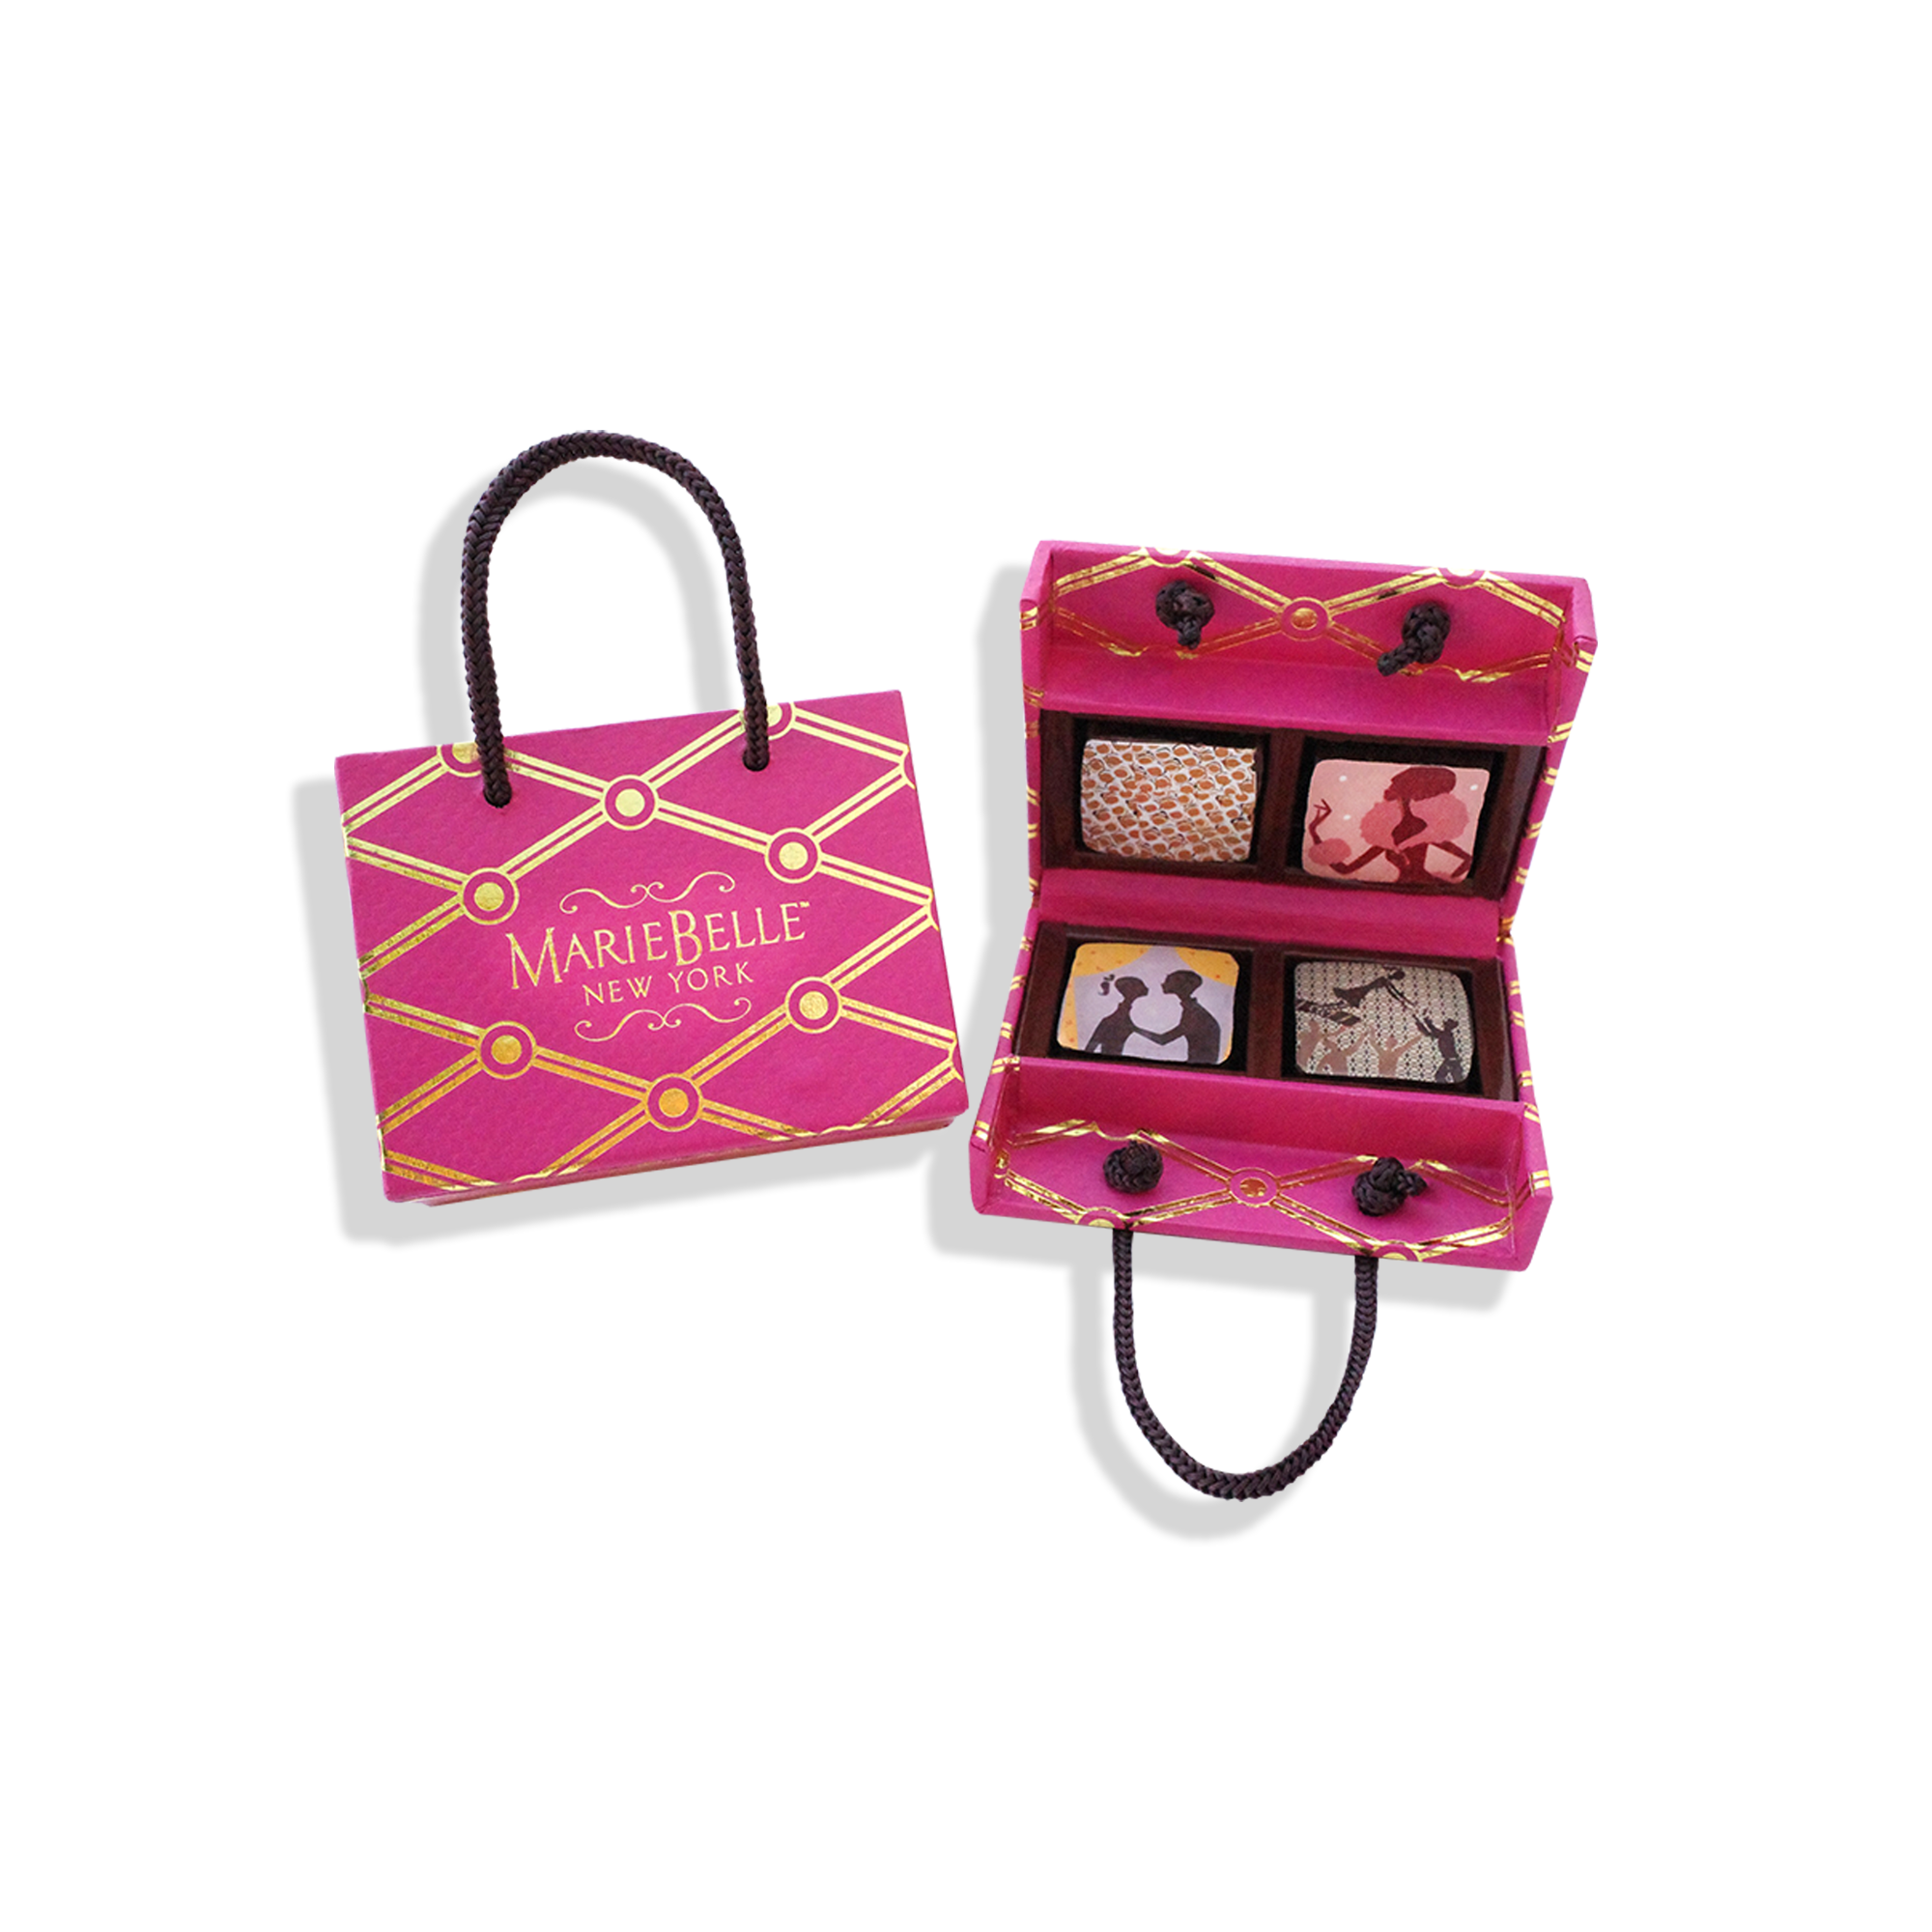 4pc Ganache in Pink Tote Box